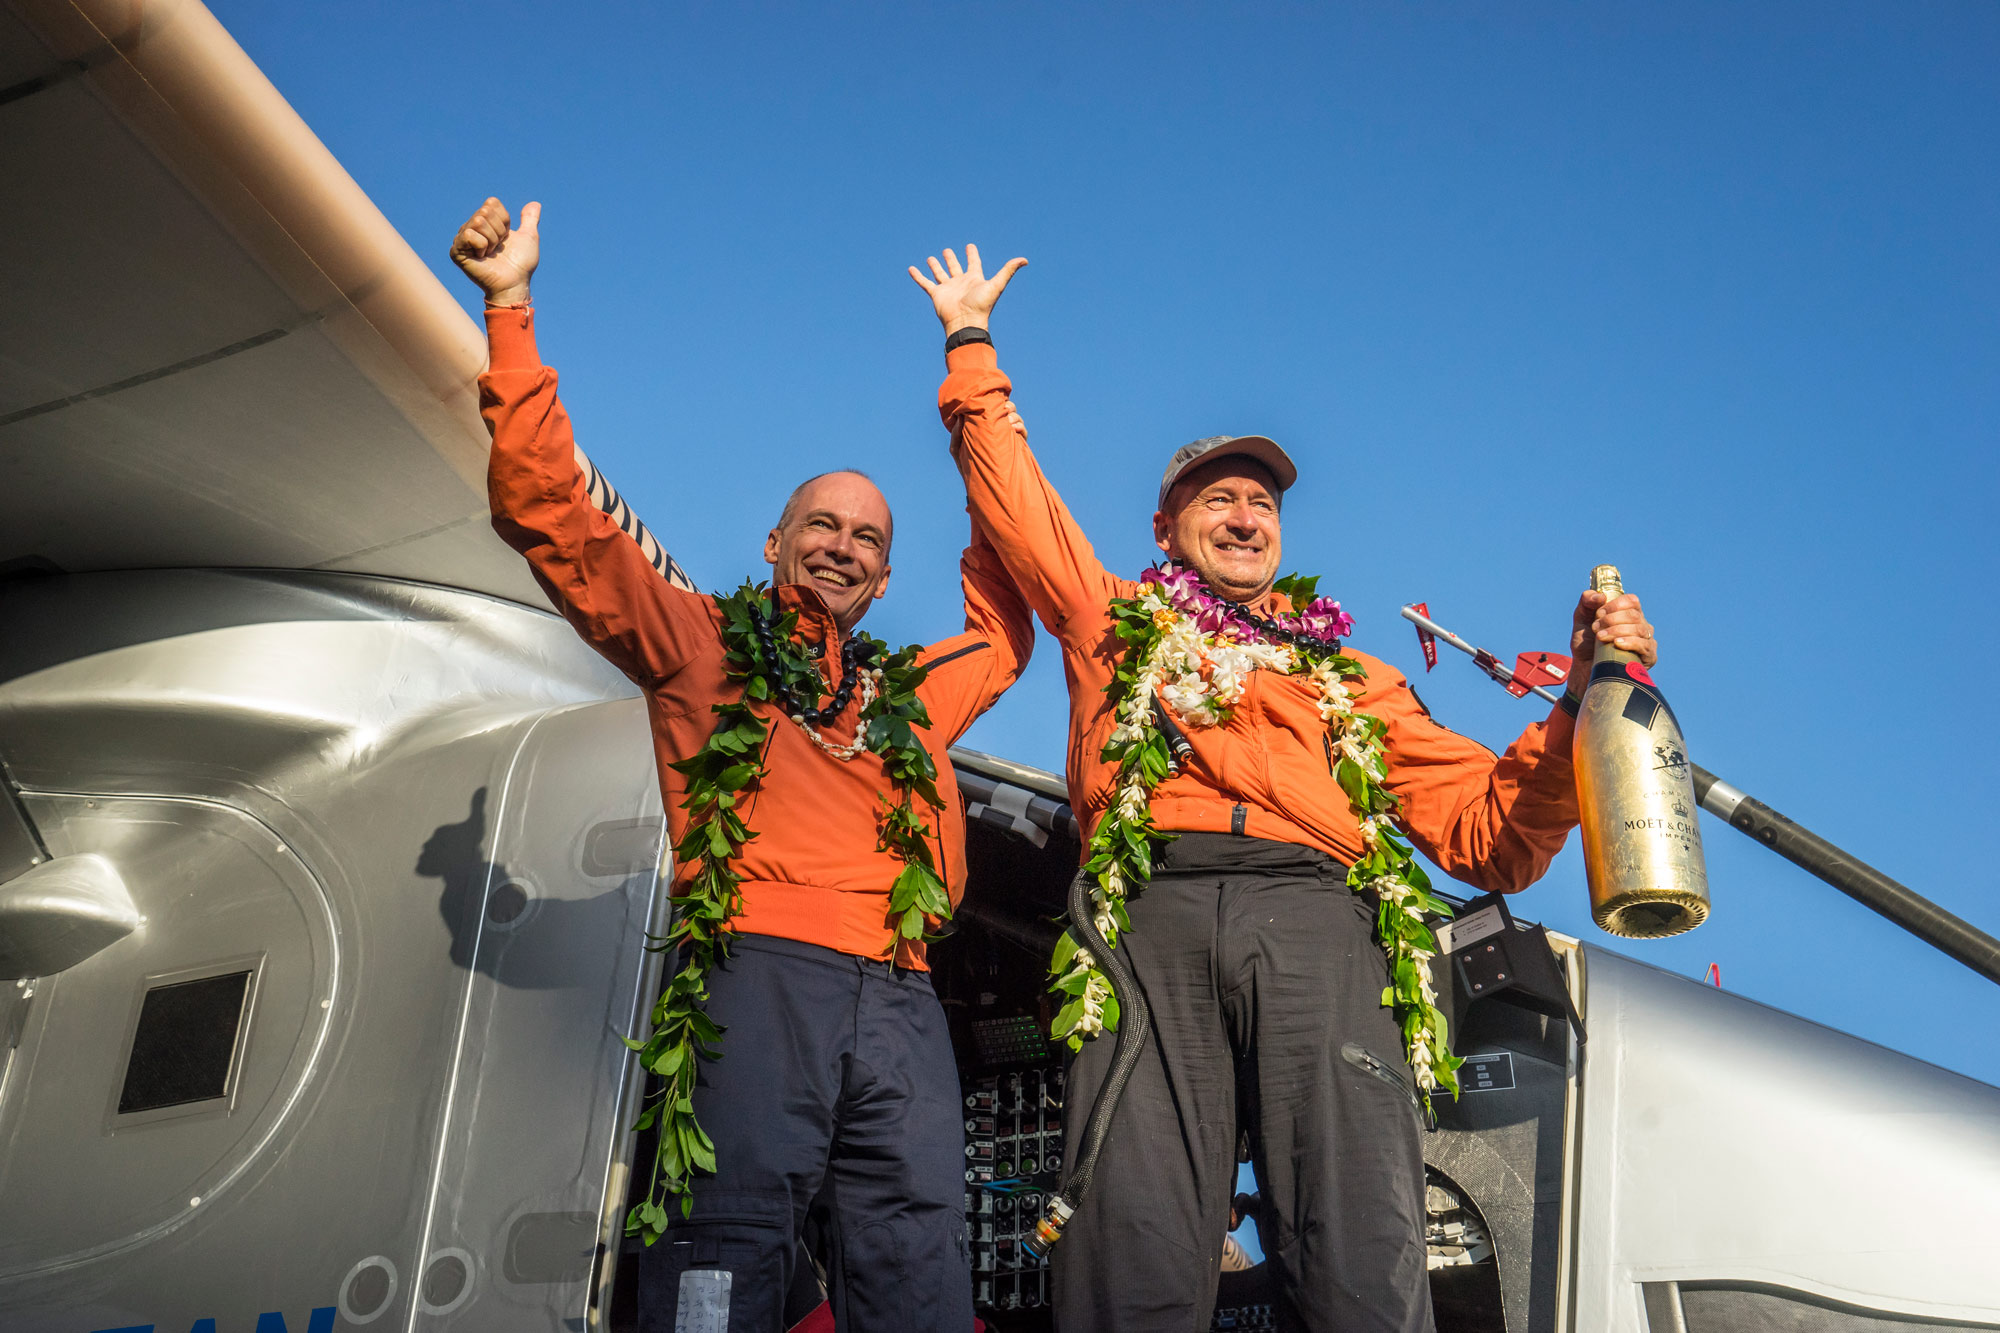 In Hawaii, Bertrand Piccard and André Borschberg celebrate winning the world record for the longest solo flight ever flown.